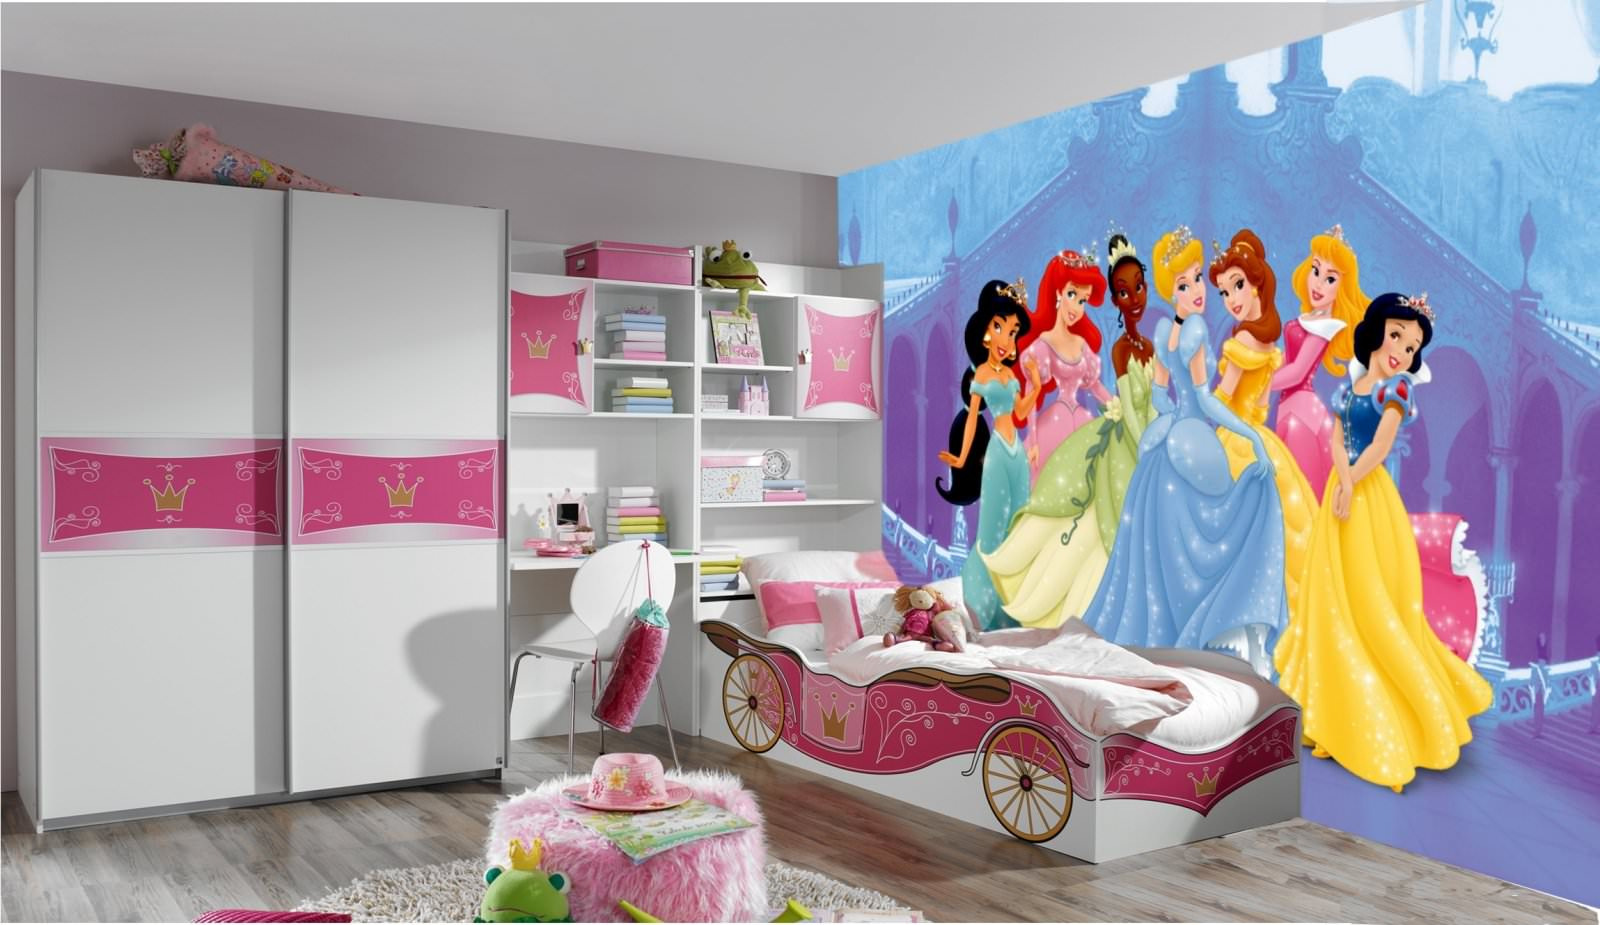 Deco murale chambre enfant lilyprenom a de murale diy for Decoration murale chambre